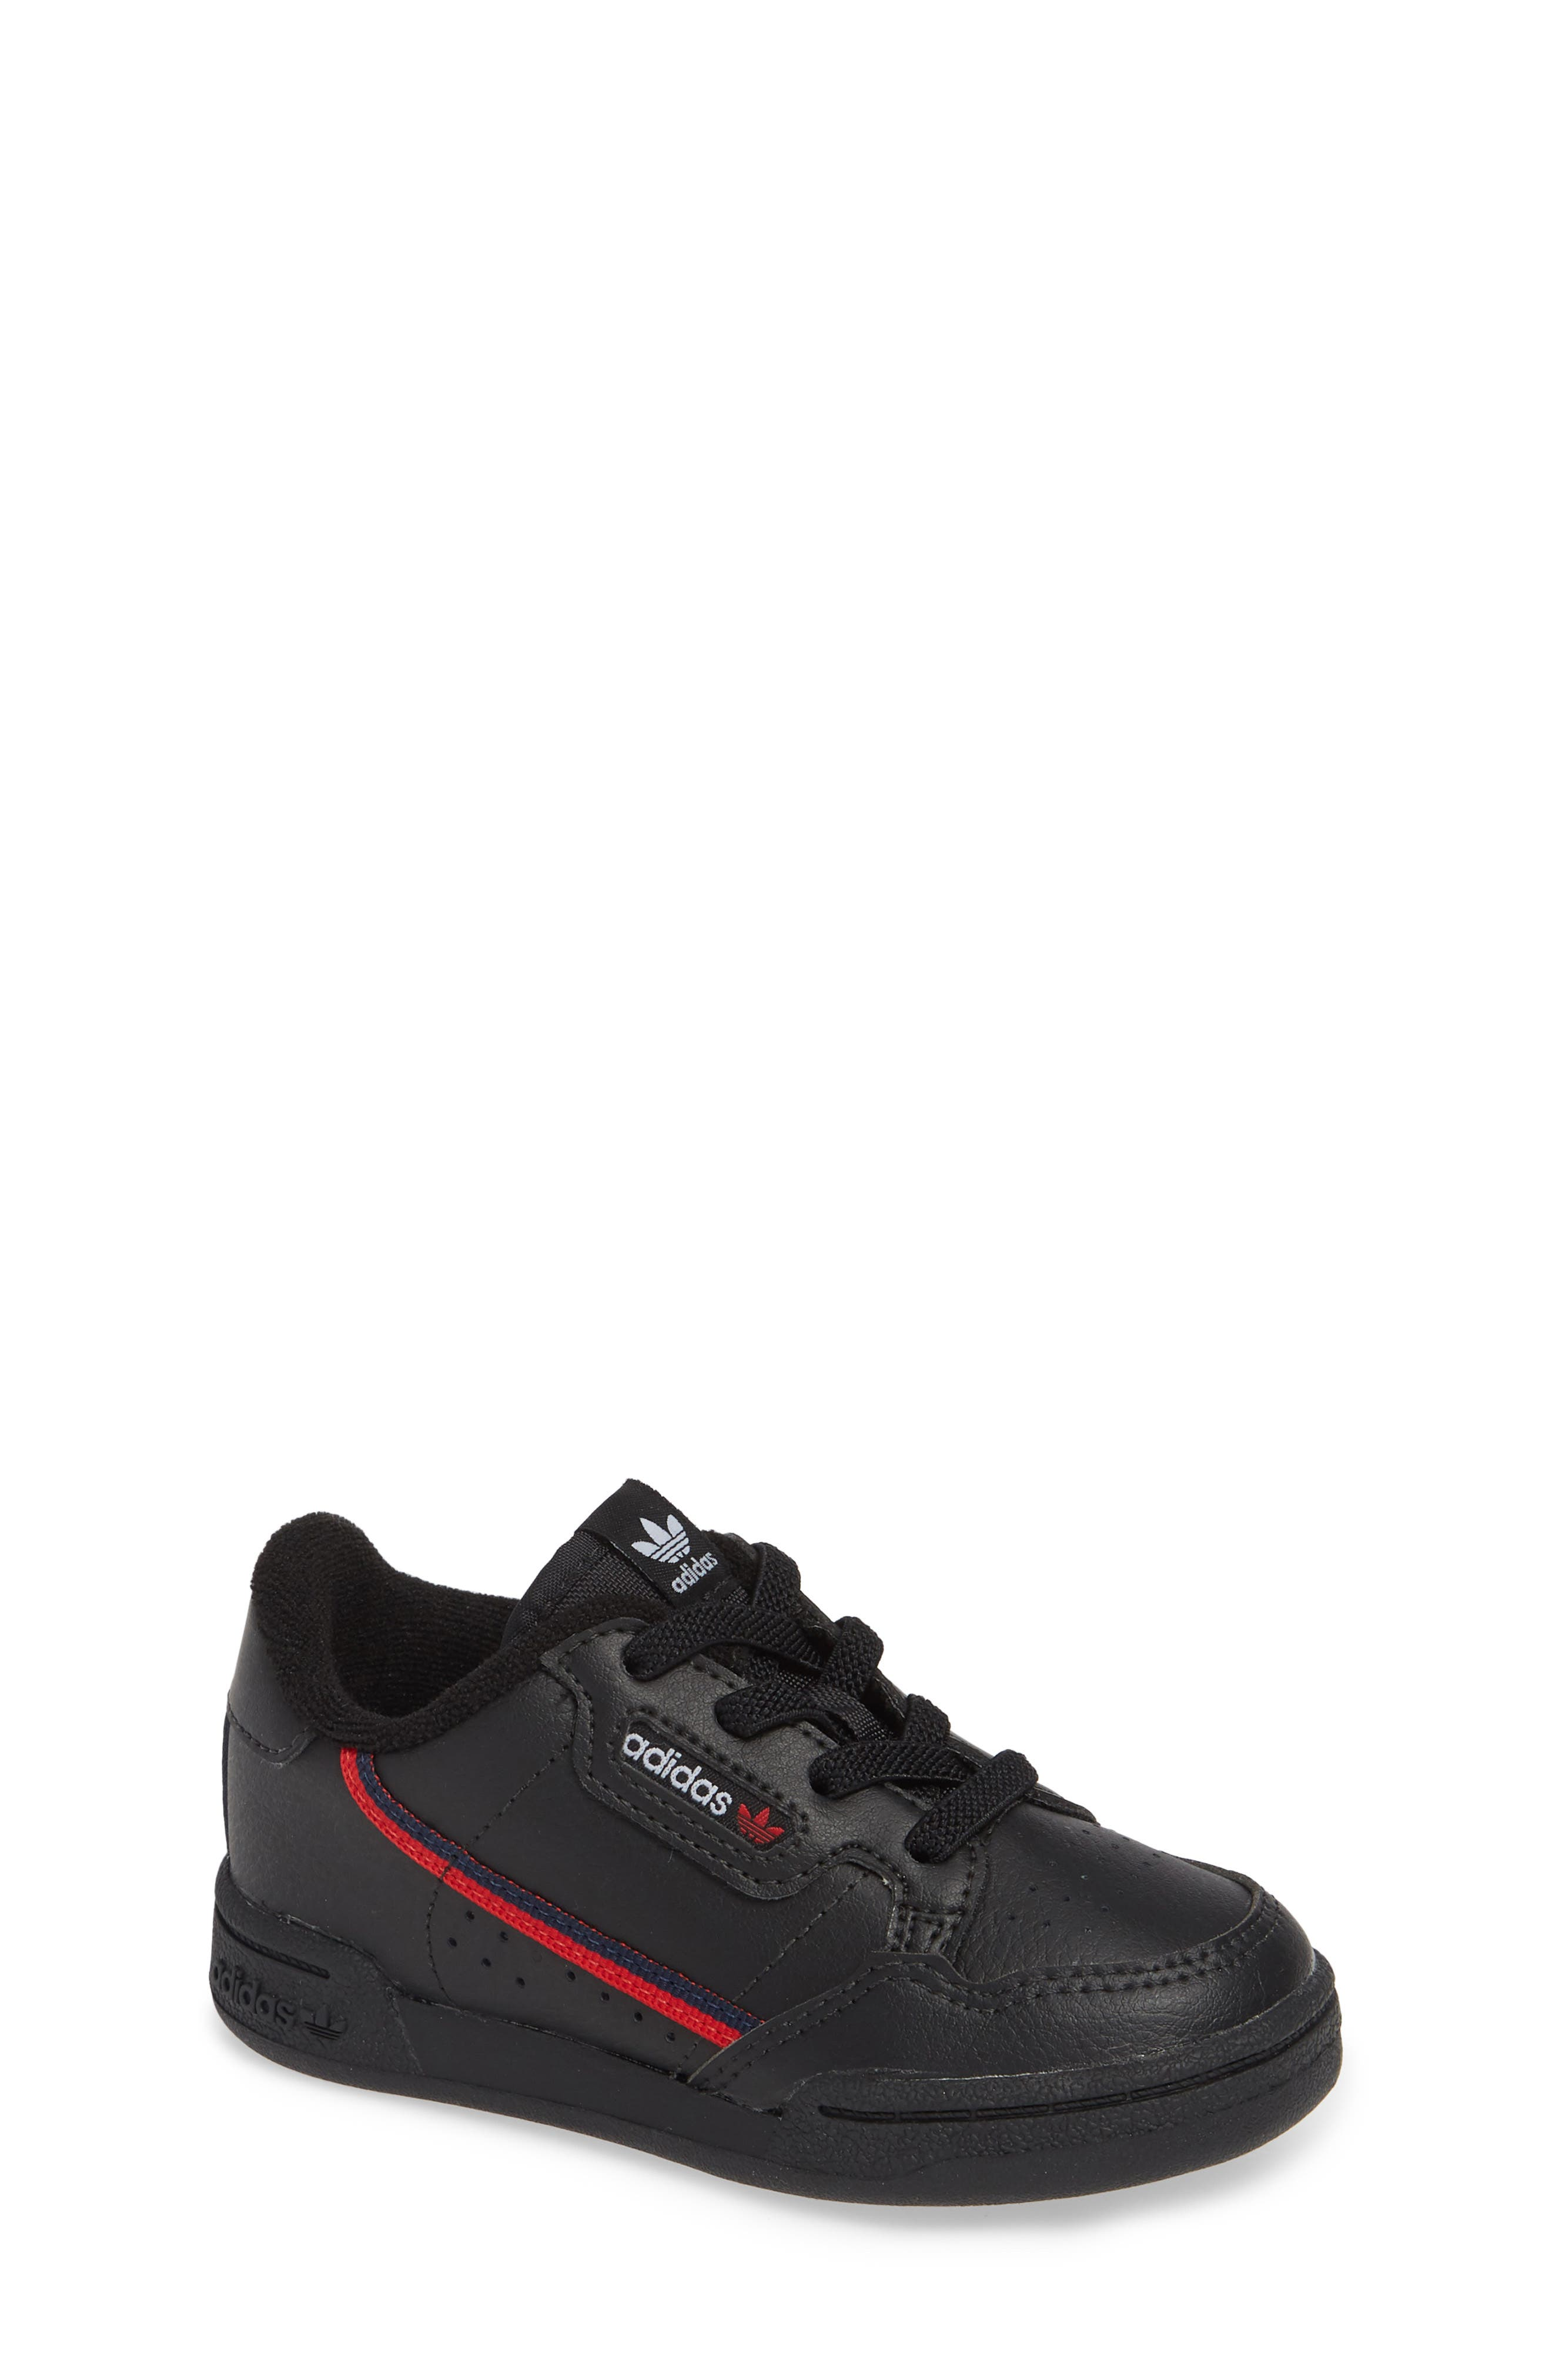 ADIDAS Continental 80 Sneaker, Main, color, CORE BLACK/ SCARLET/ NAVY